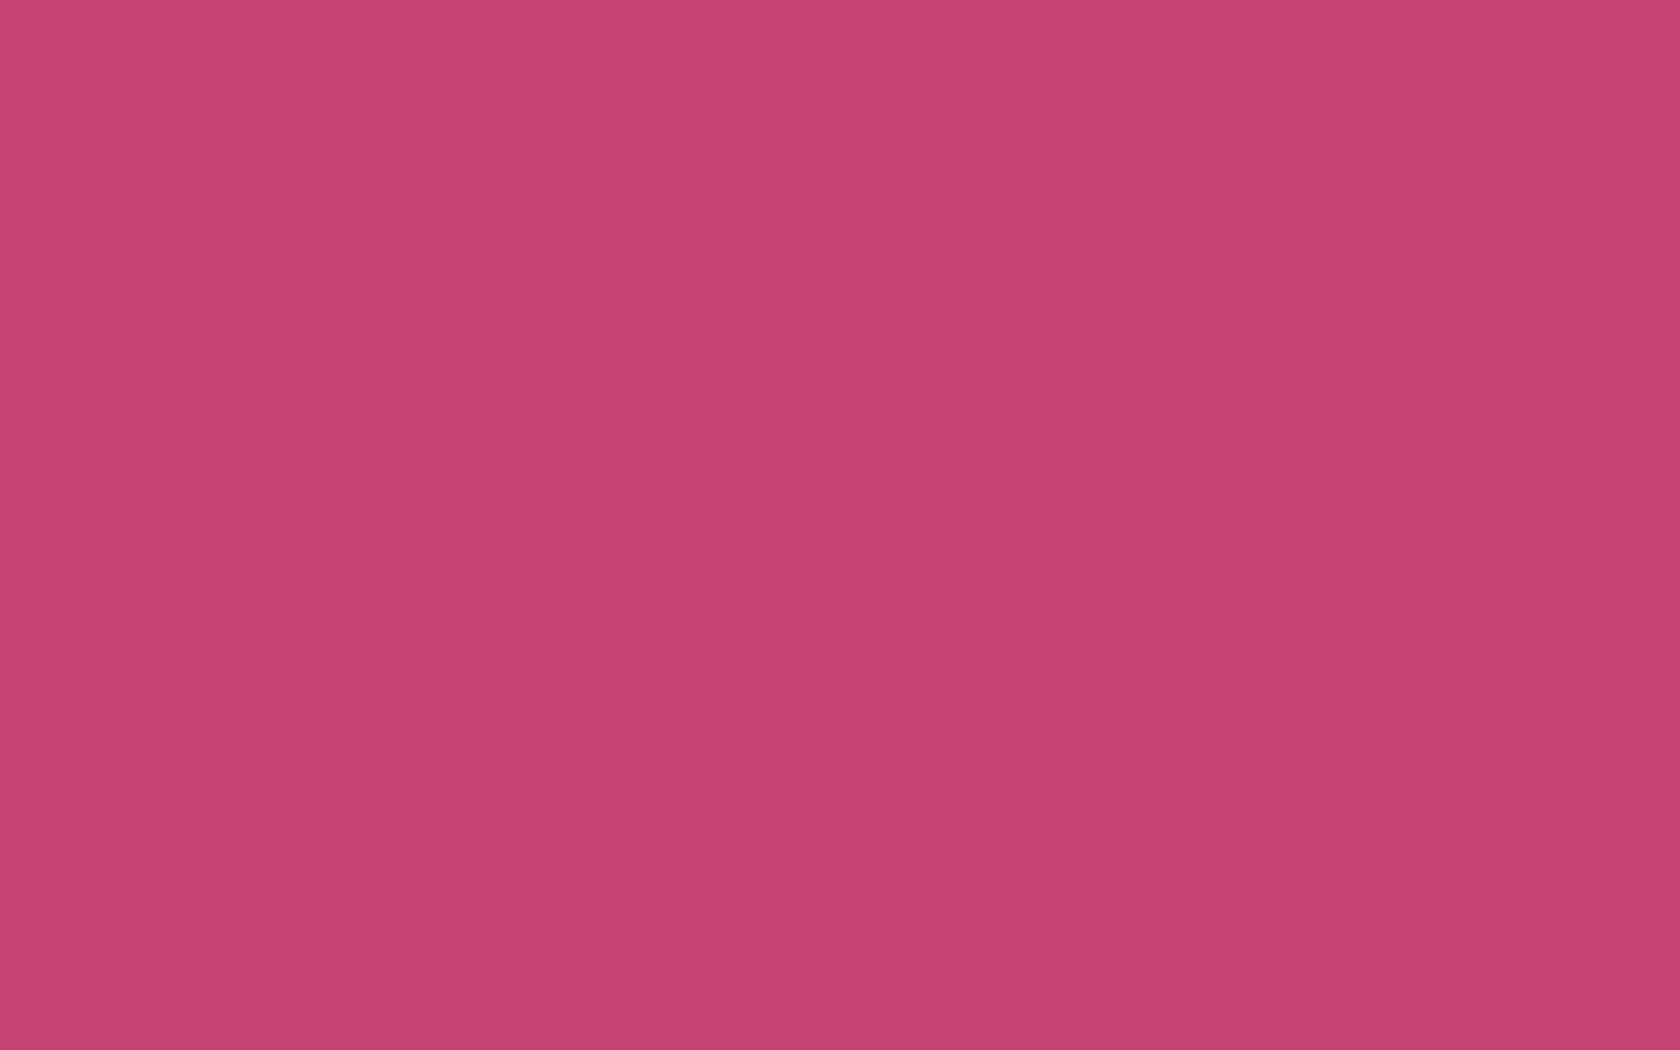 1680x1050 Fuchsia Rose Solid Color Background